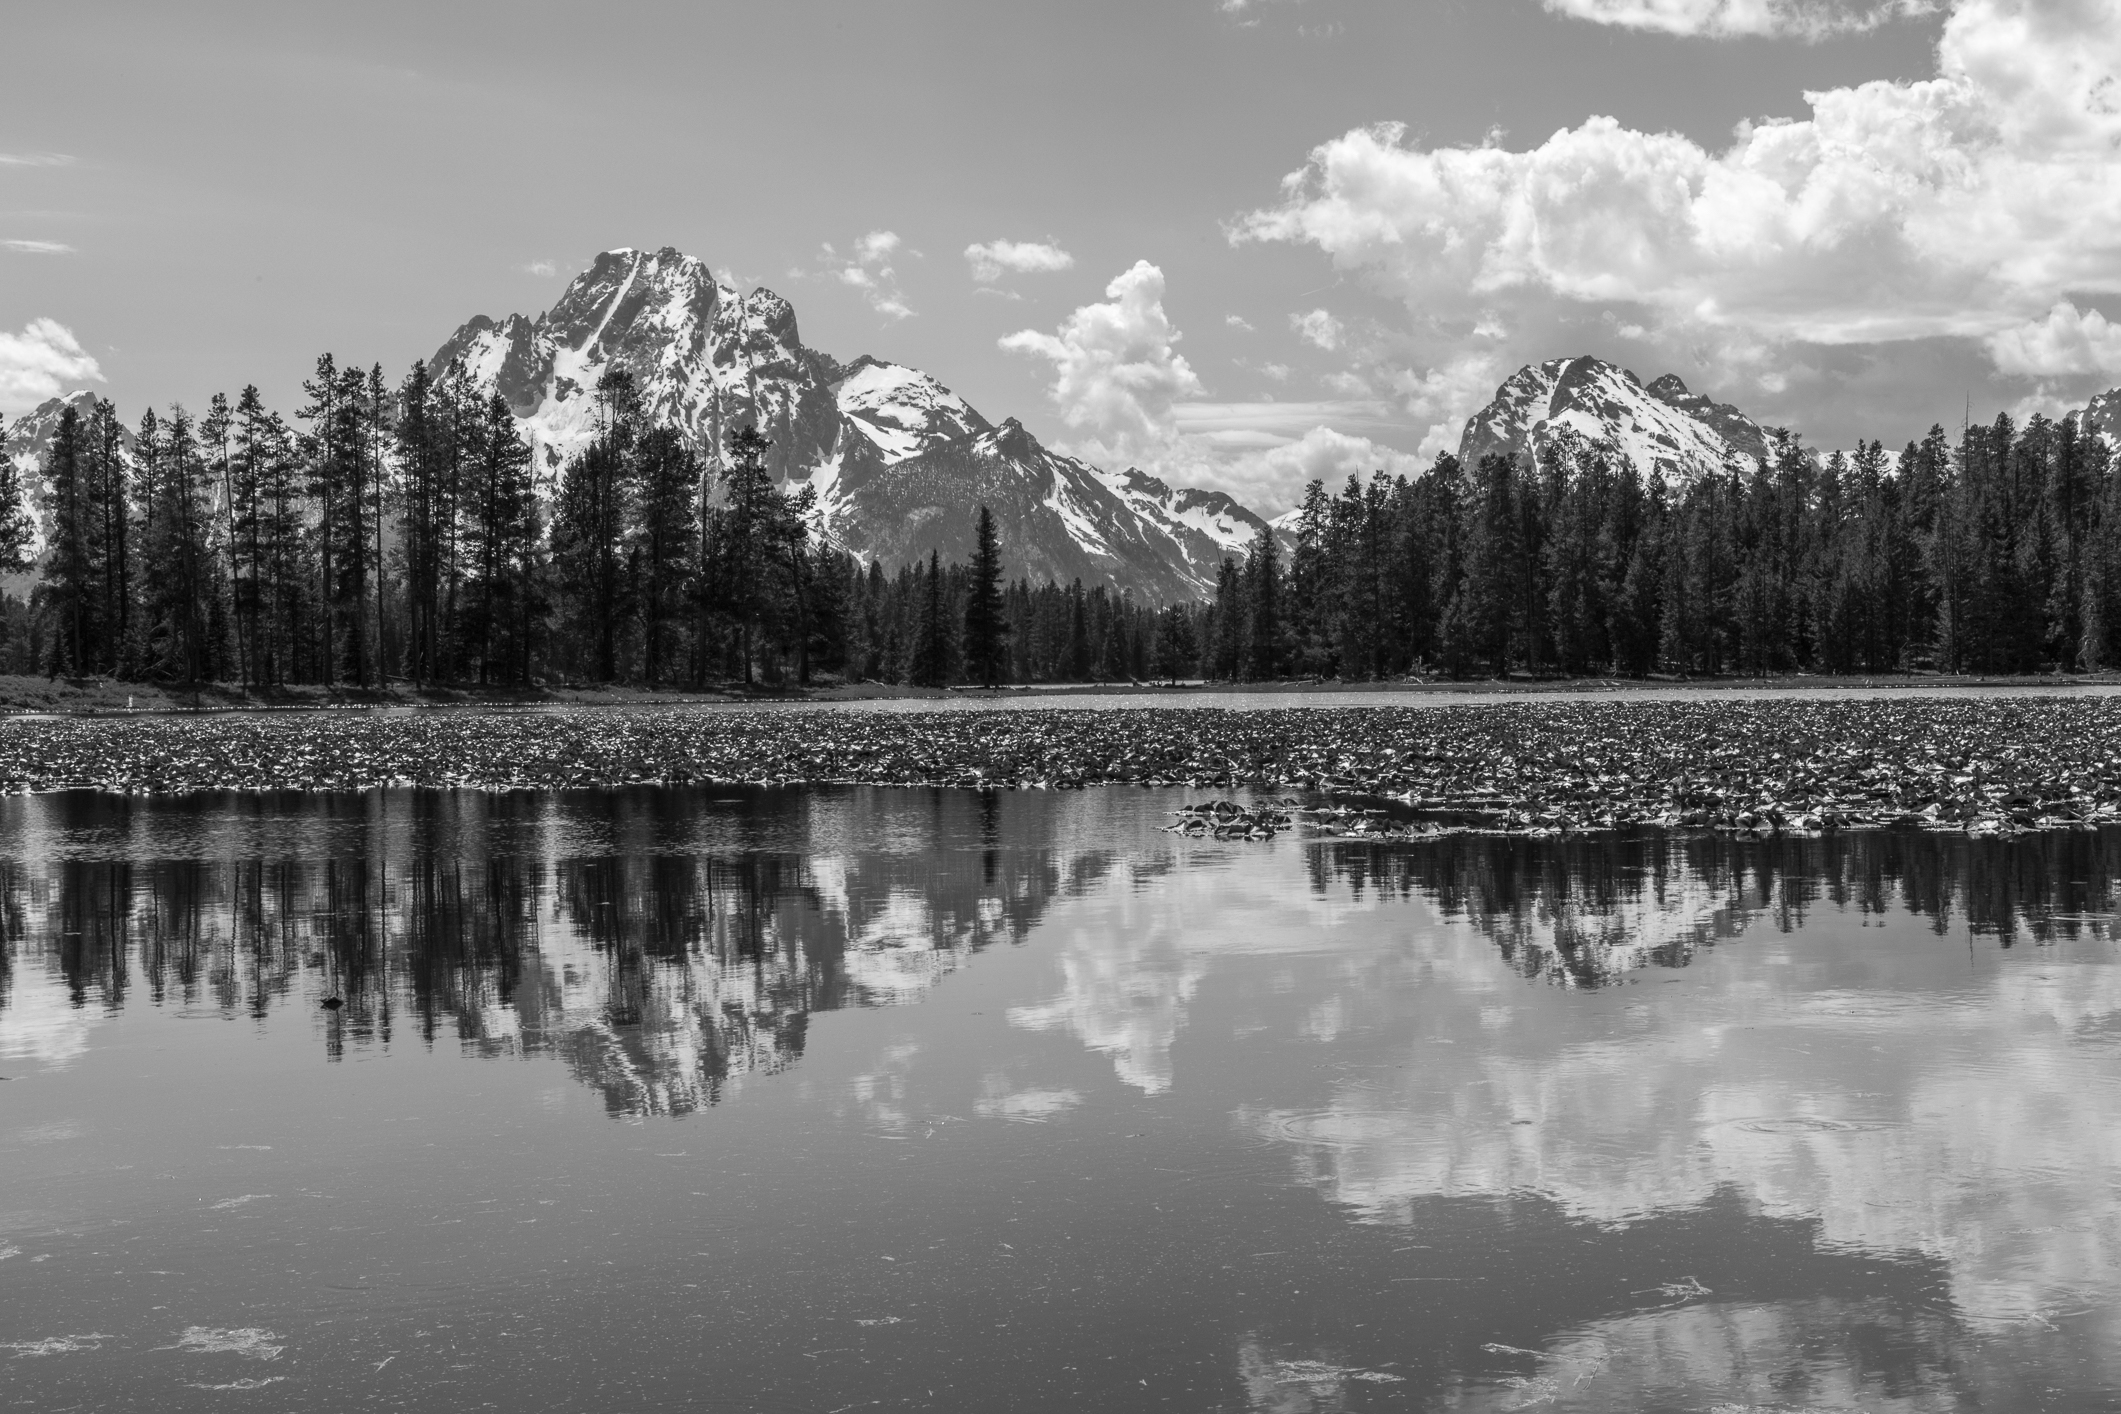 Colter Bay, Image # 3227